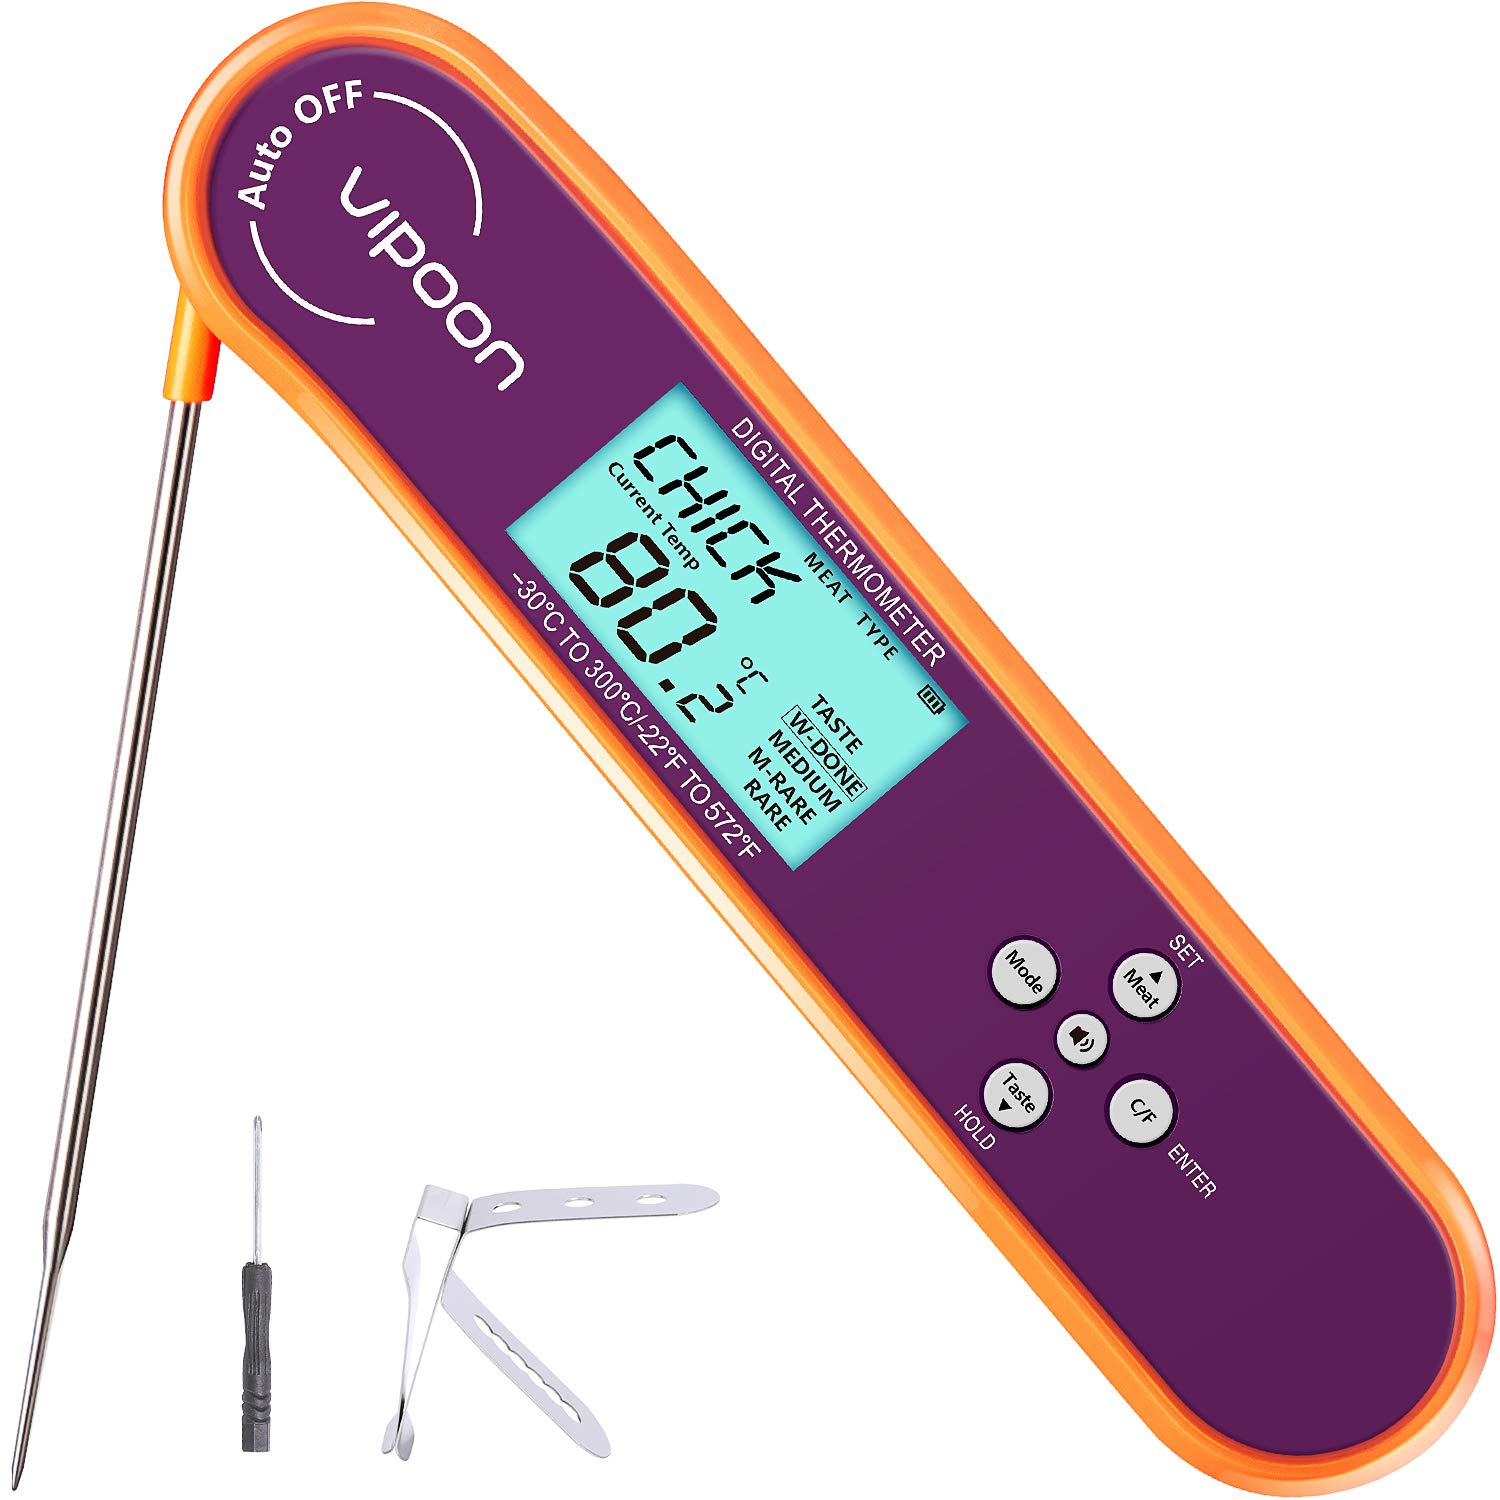 【2021 New Version】Vipoon Digital Meat Thermometer,Instant Read Cooking Food Kitchen Thermometer with Tri-color Indicator, Alarm Voice Prompts Backlight for Candy,Oil Deep Fry BBQ and Grill Smoker